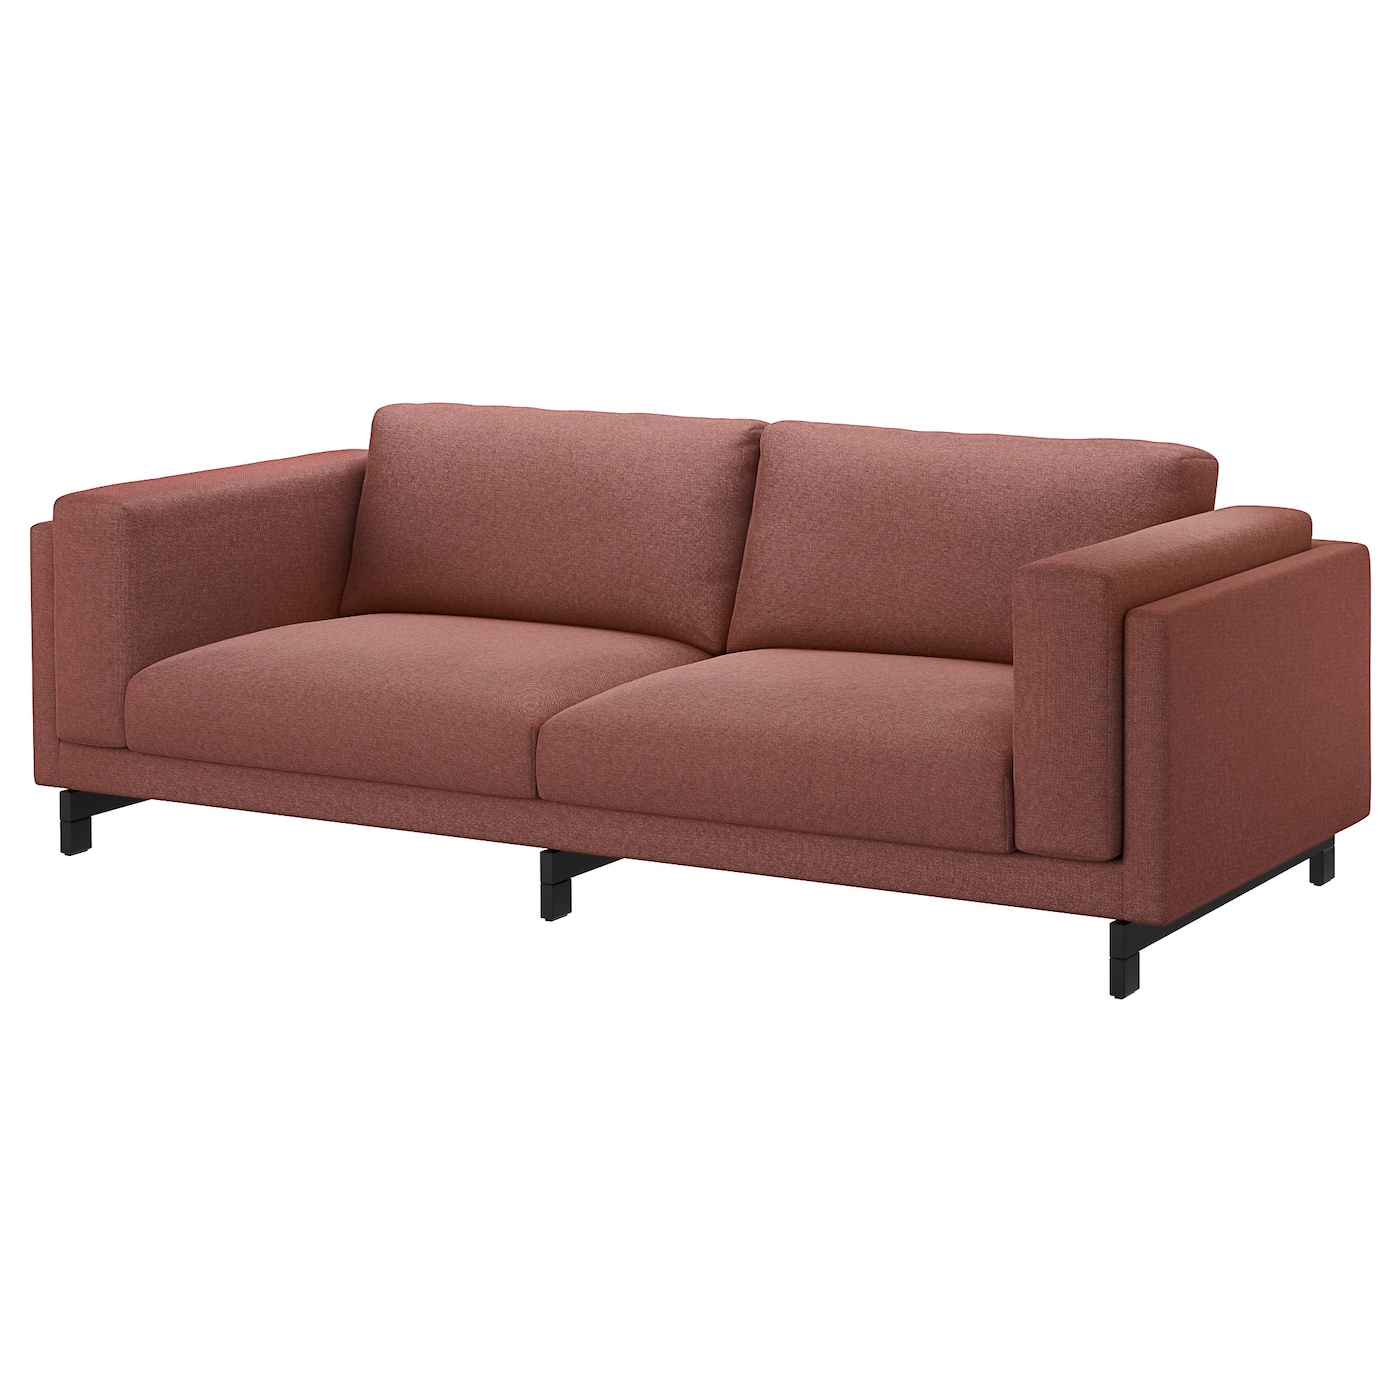 nockeby three seat sofa tallmyra rust wood ikea. Black Bedroom Furniture Sets. Home Design Ideas